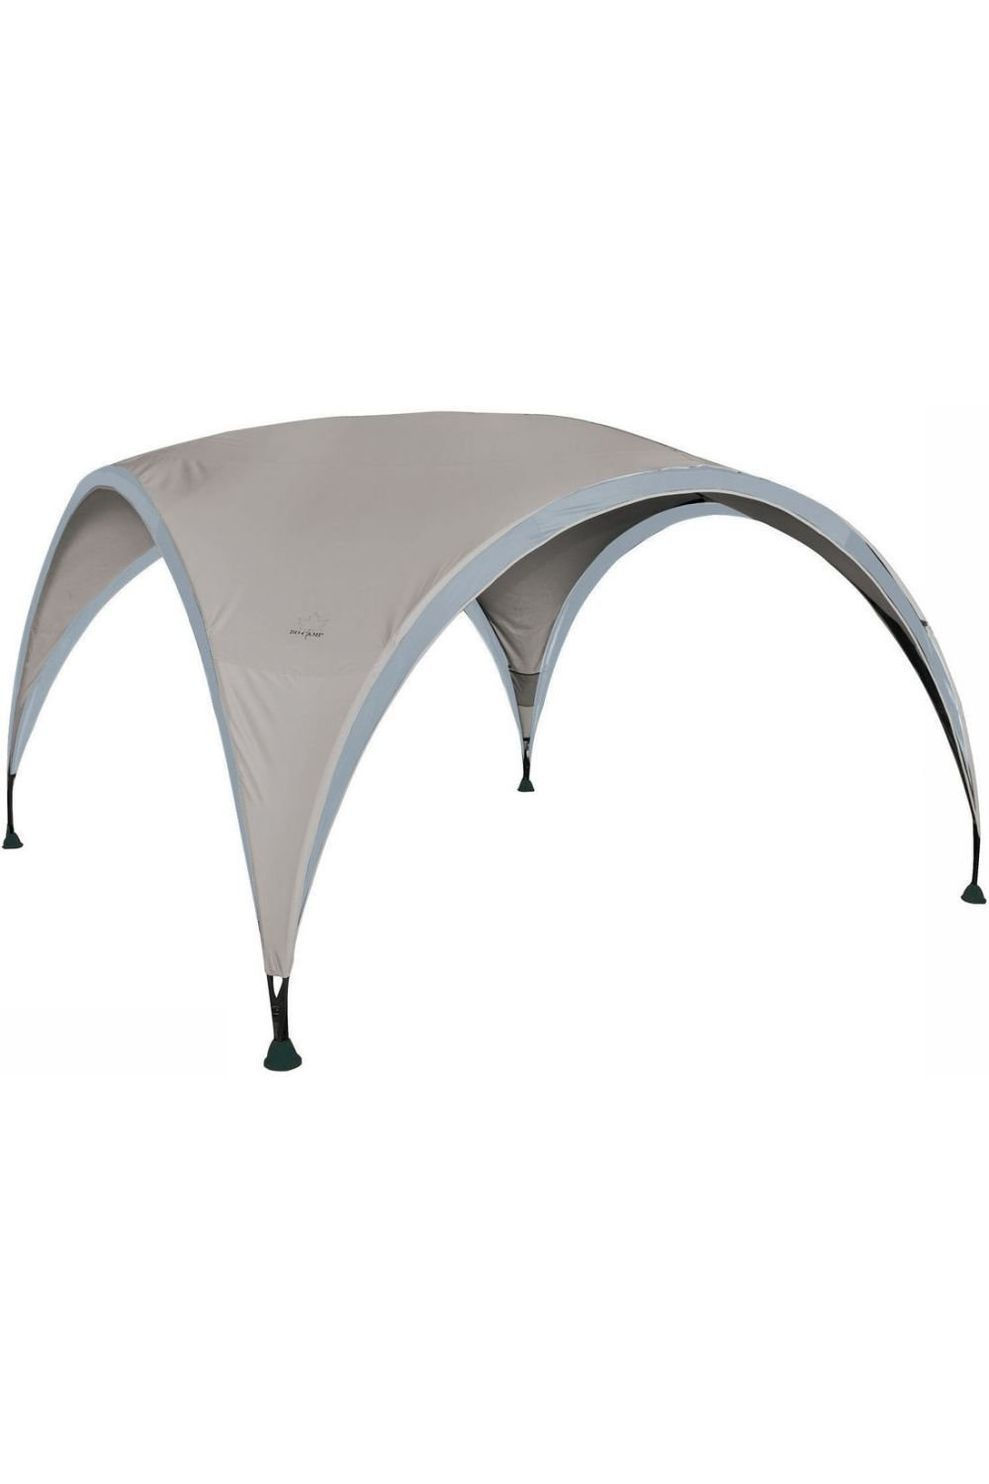 Bo-Garden Tarps Party Shelter Partytent Large 4,26X4,26X2,33 Meter - - Transparant